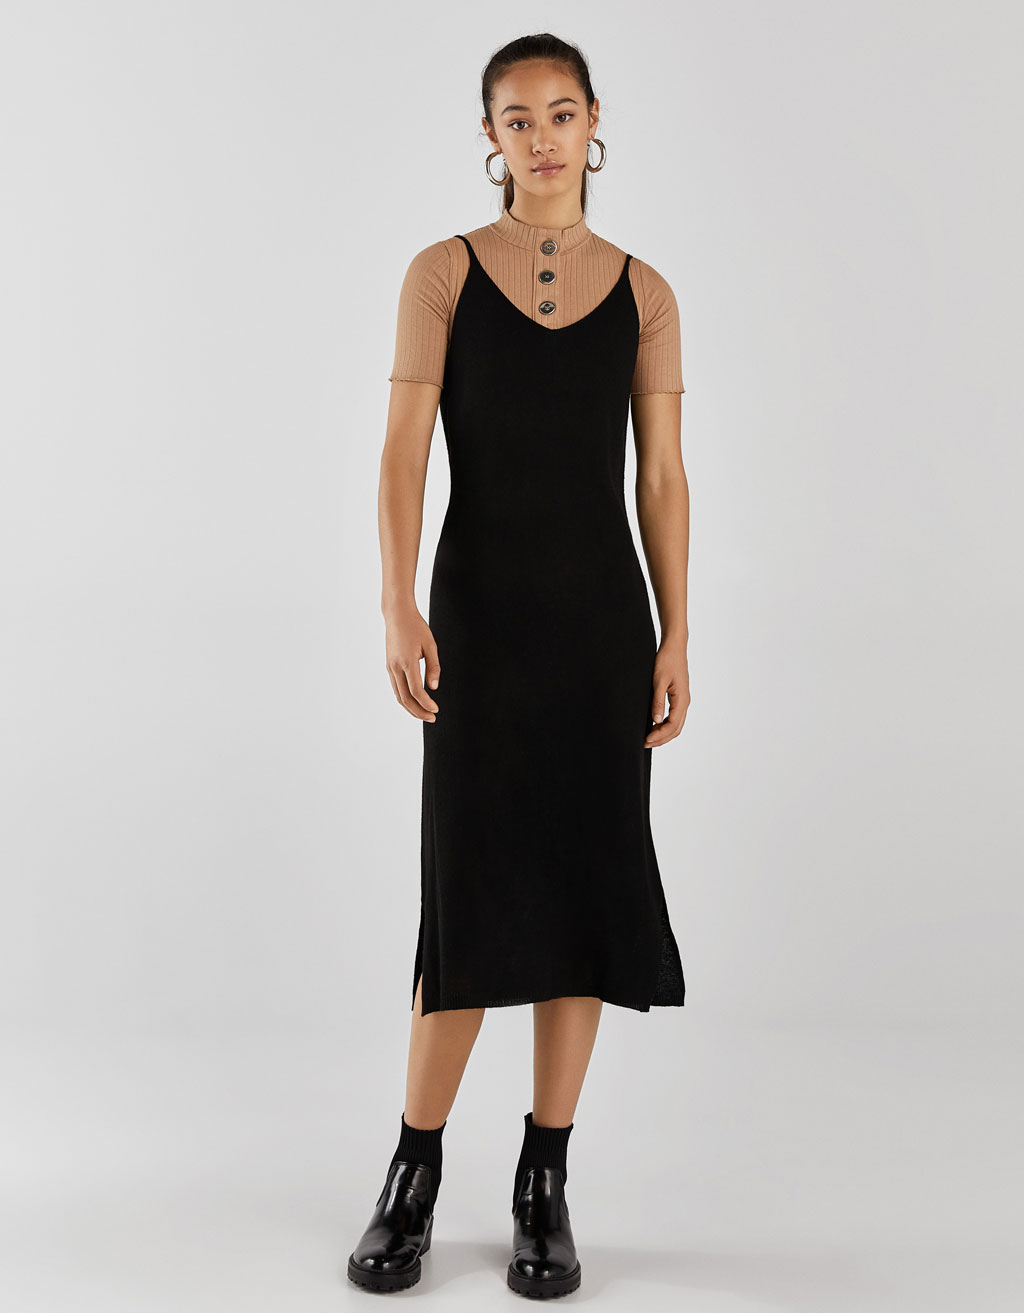 8ecabd0d7f413 Long knit dress - Dresses - Bershka United States